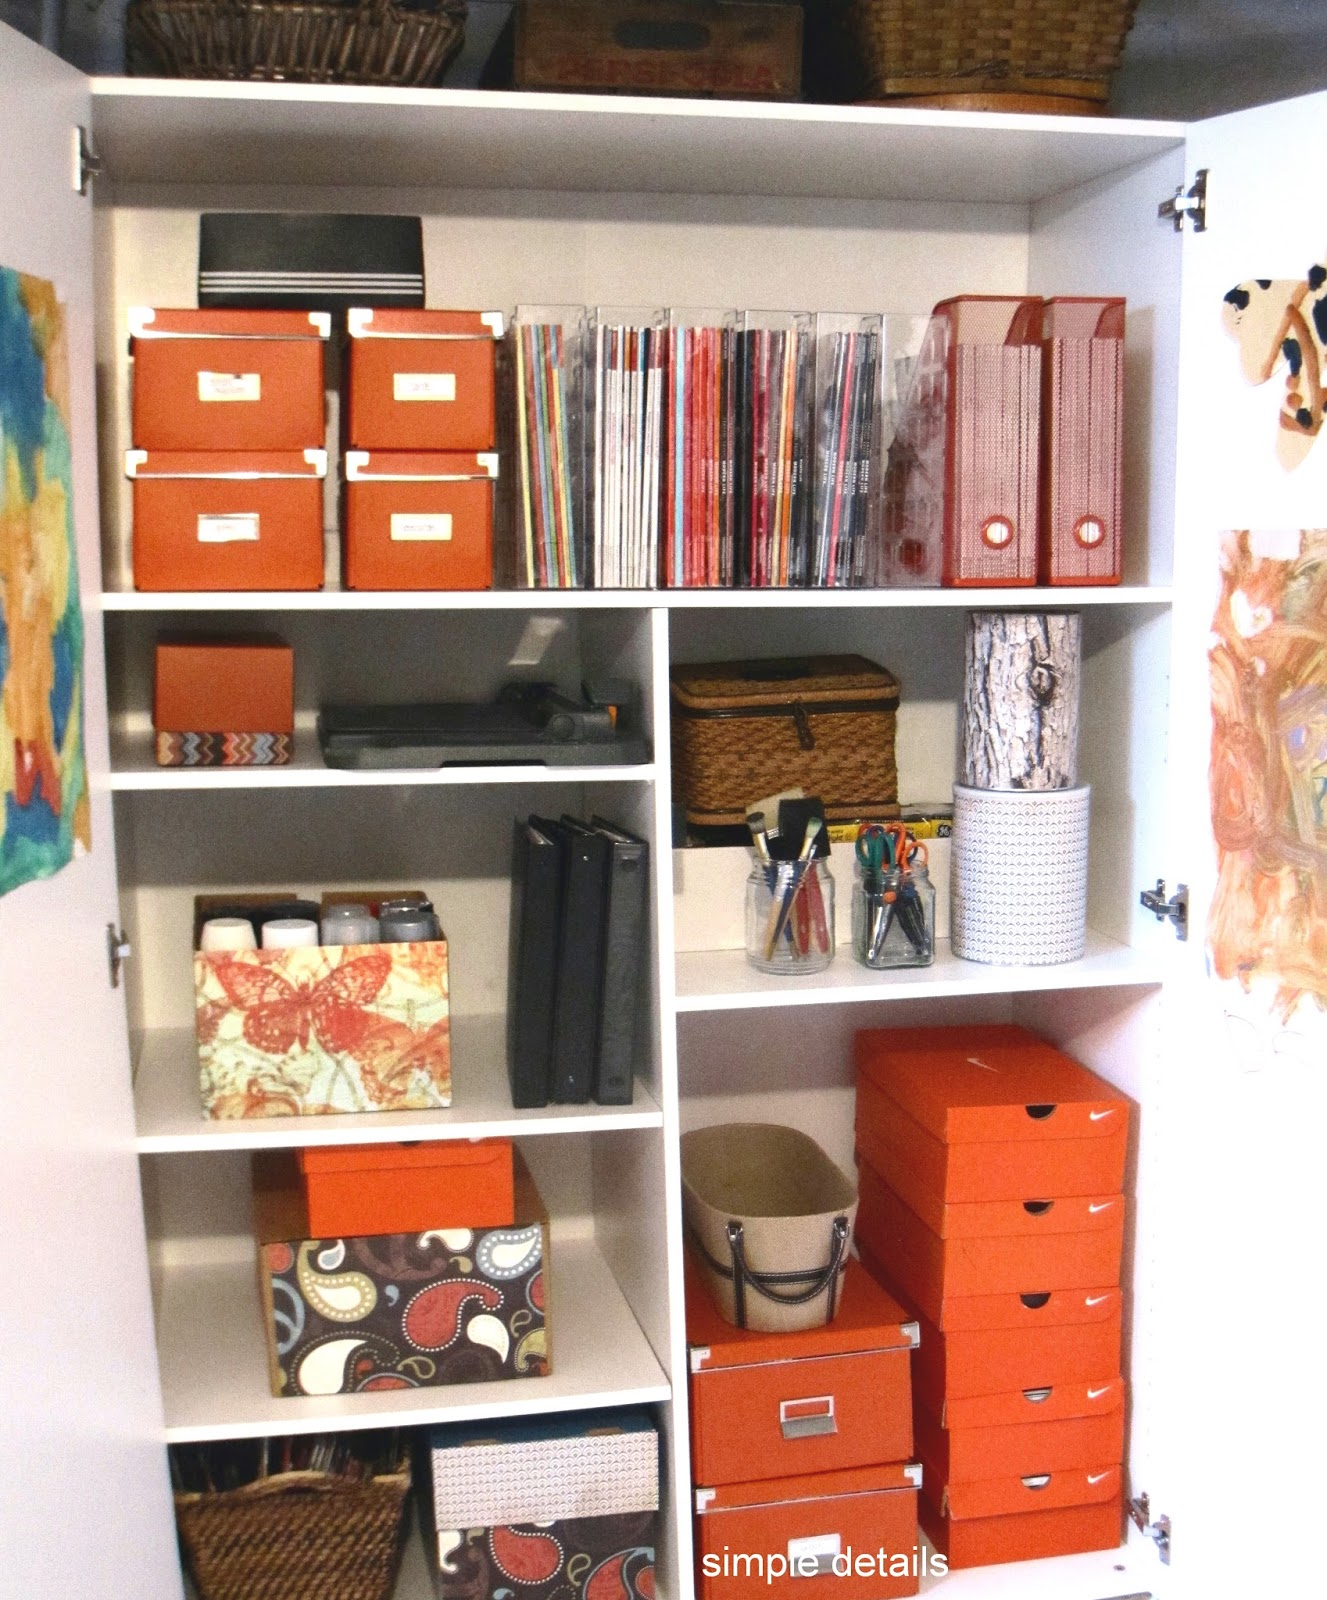 Simple Details My Five Favorites Home Organization Tips